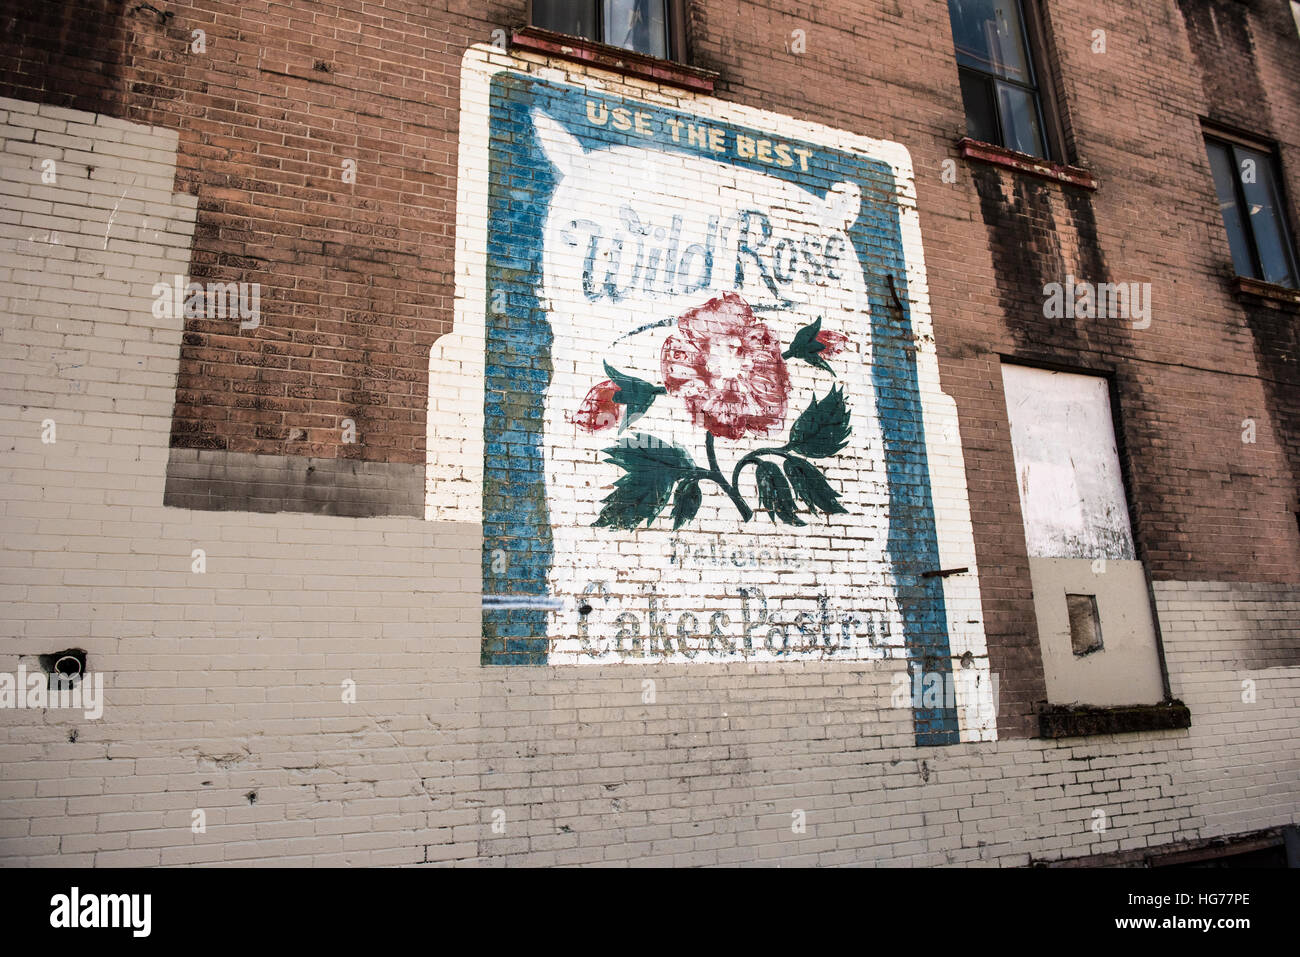 Old billboard ad painted on a brick building. - Stock Image